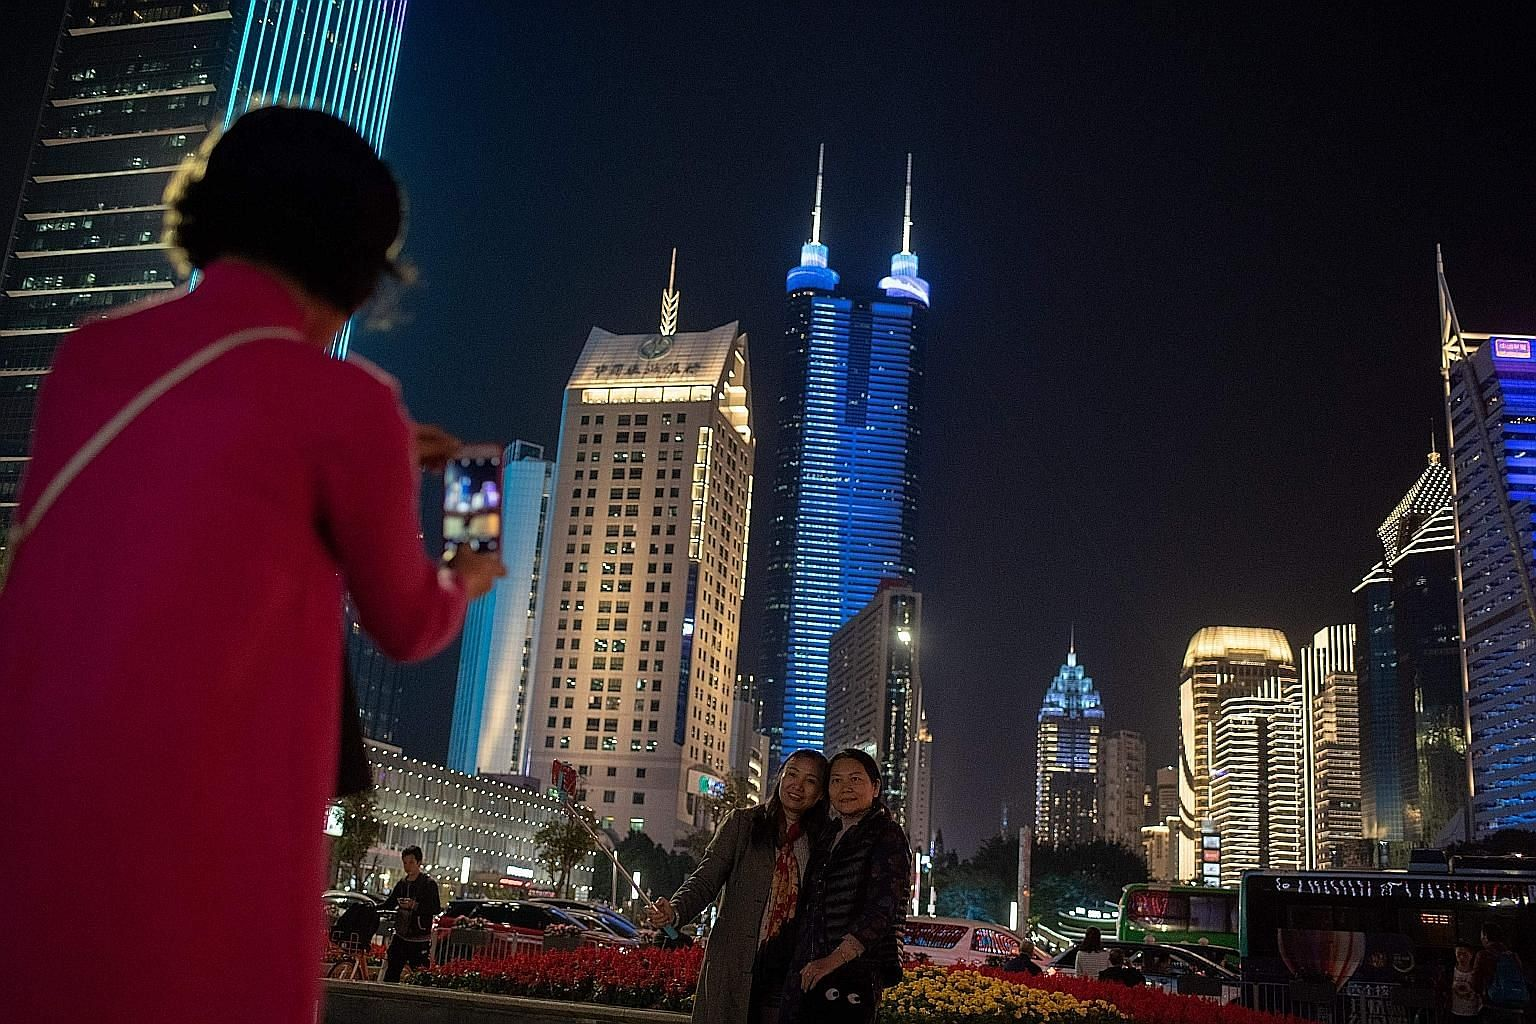 China's plan for its Greater Bay Area singles out four cities - Shenzhen (right), Hong Kong, Macau and Guangzhou - as key centres. Observers said the plan presents business opportunities, but could also mean more competition for Singapore.